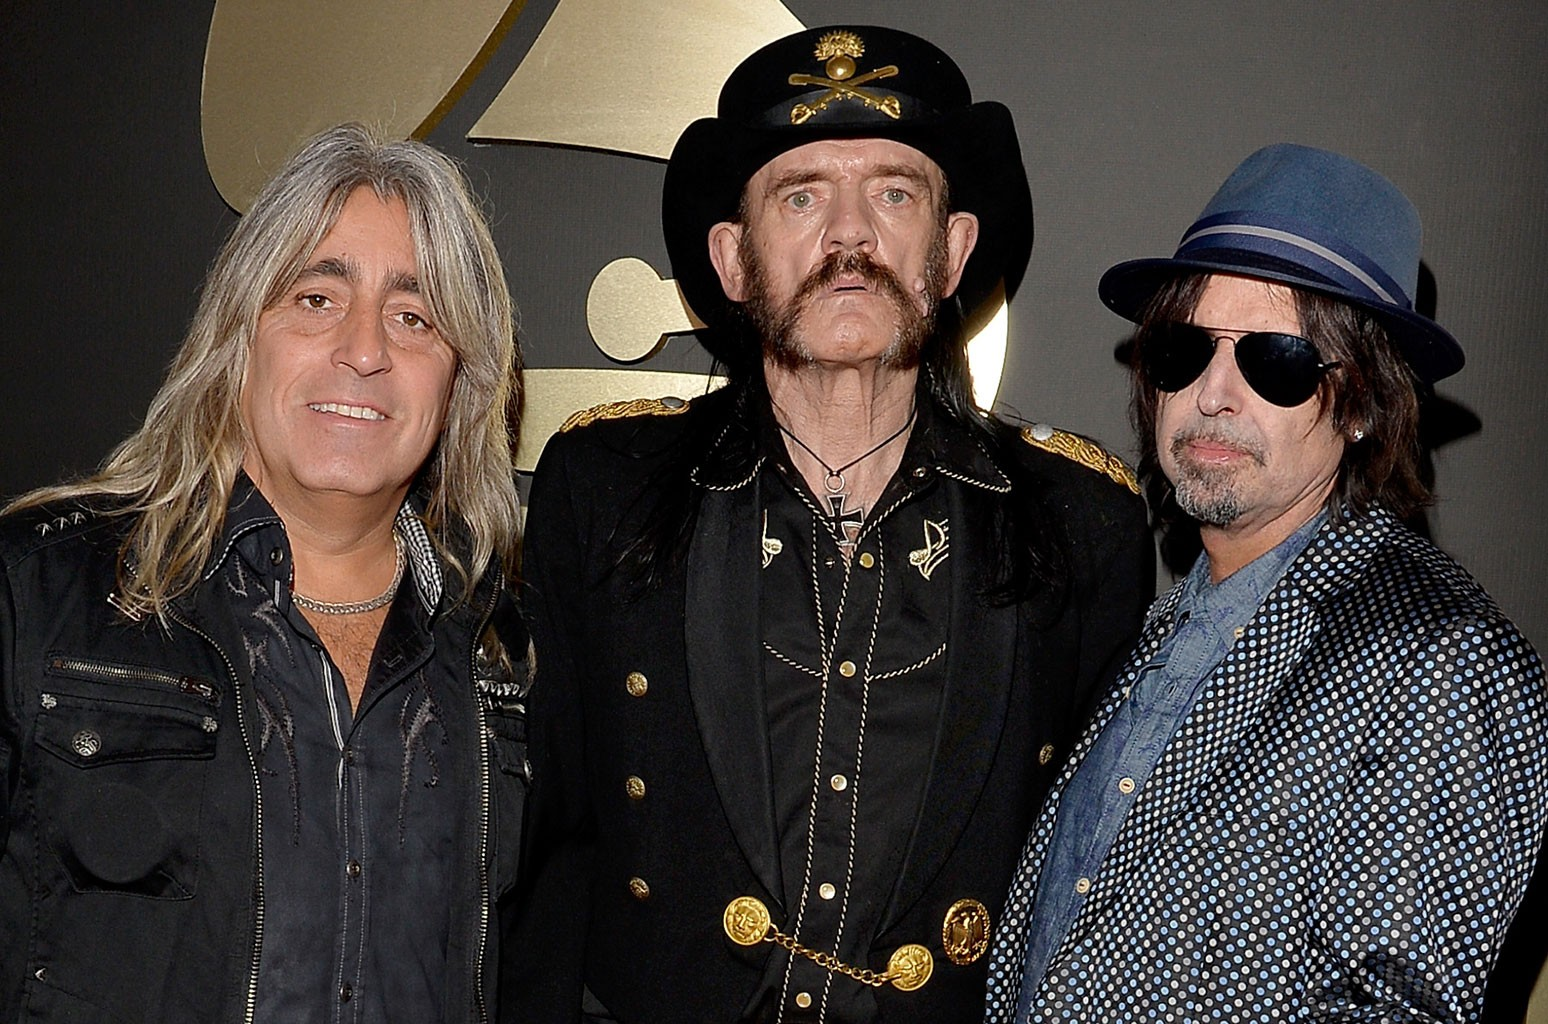 Mikkey Dee, Ian Fraser Kilmister and Phil Campbell of Motorhead